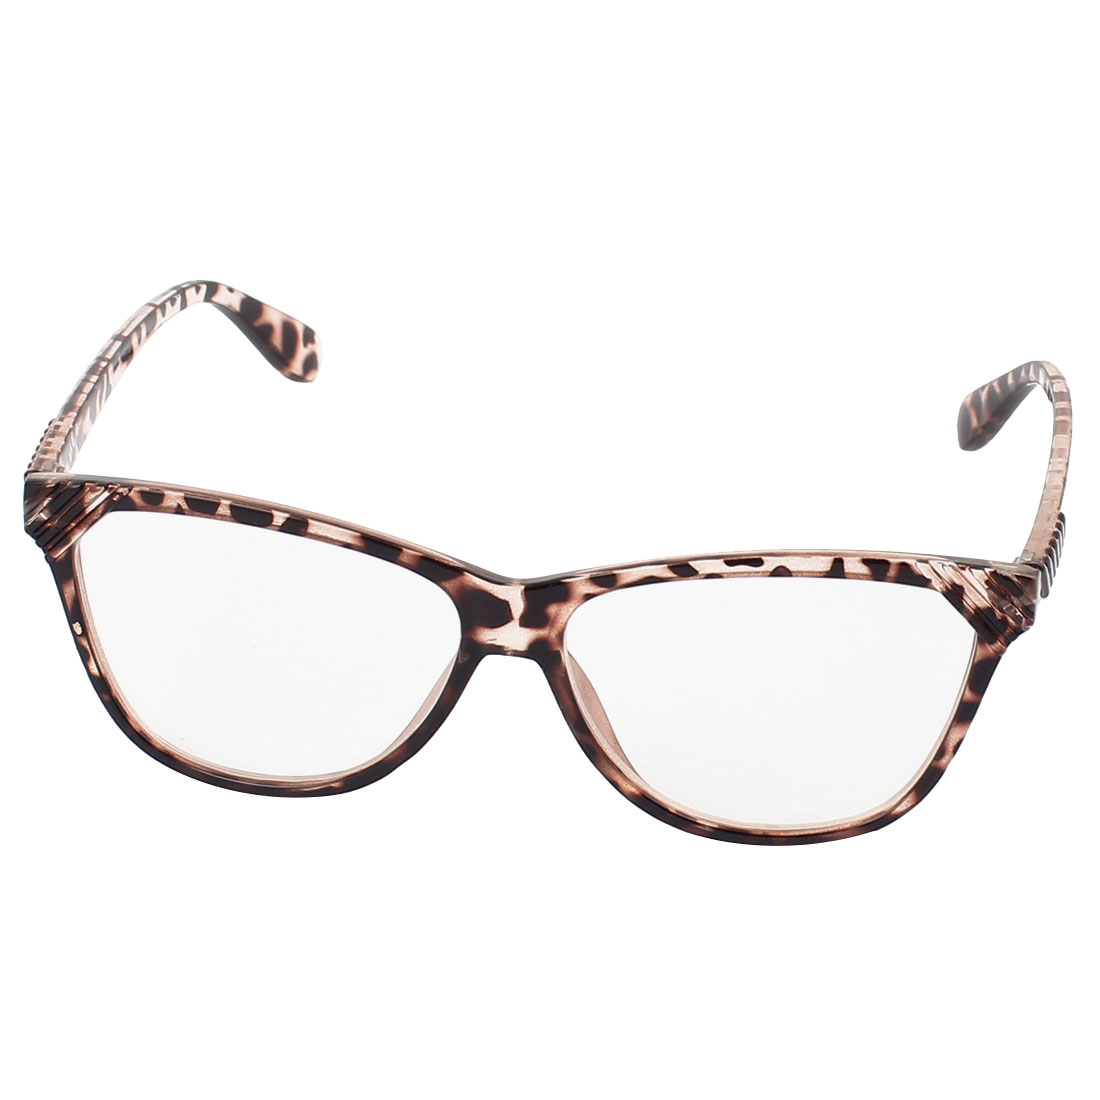 Leopard Pattern Frame Single Bridge Clear Lens Plain Glasses Eyeglasses Plano Spectacles